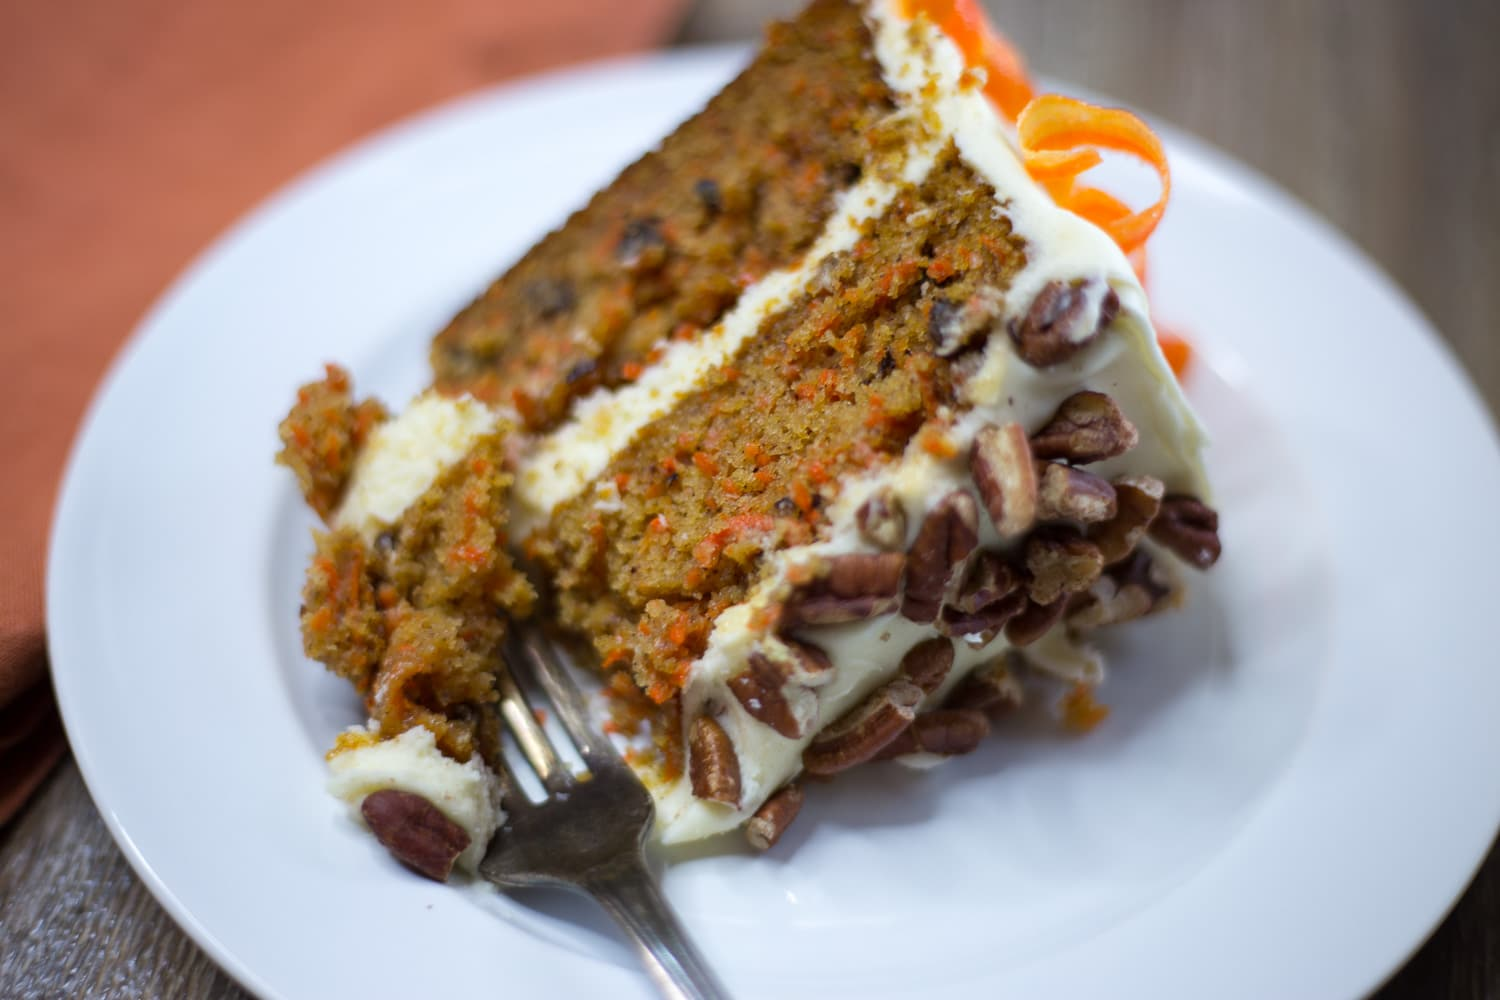 Moist carrot cake with cream cheese frosting, pecans, and crunchy candied carrots is my new favorite dessert! |artzyfoodie.com|